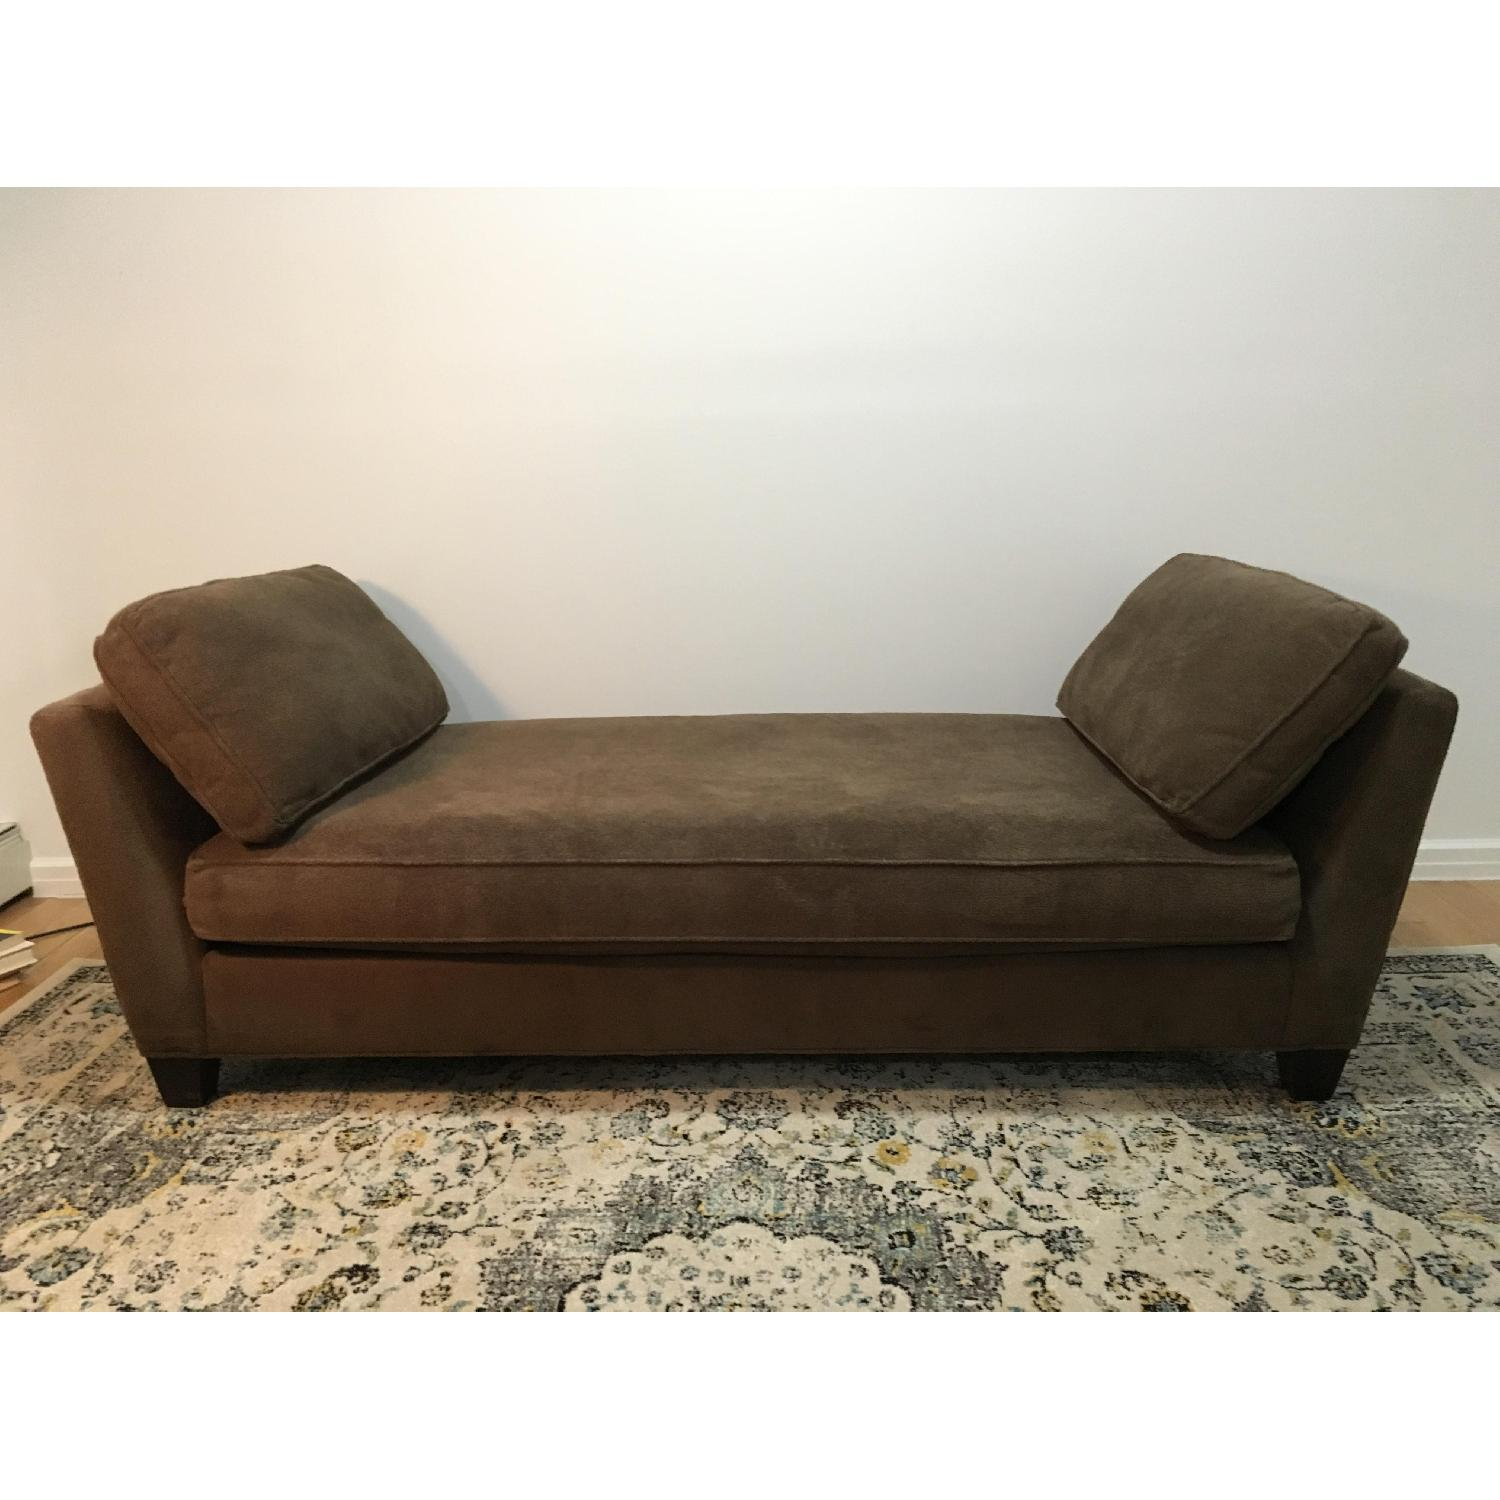 crate and barrel lounge sofa pilling leather company fforestfach swansea marlowe daybed aptdeco 0